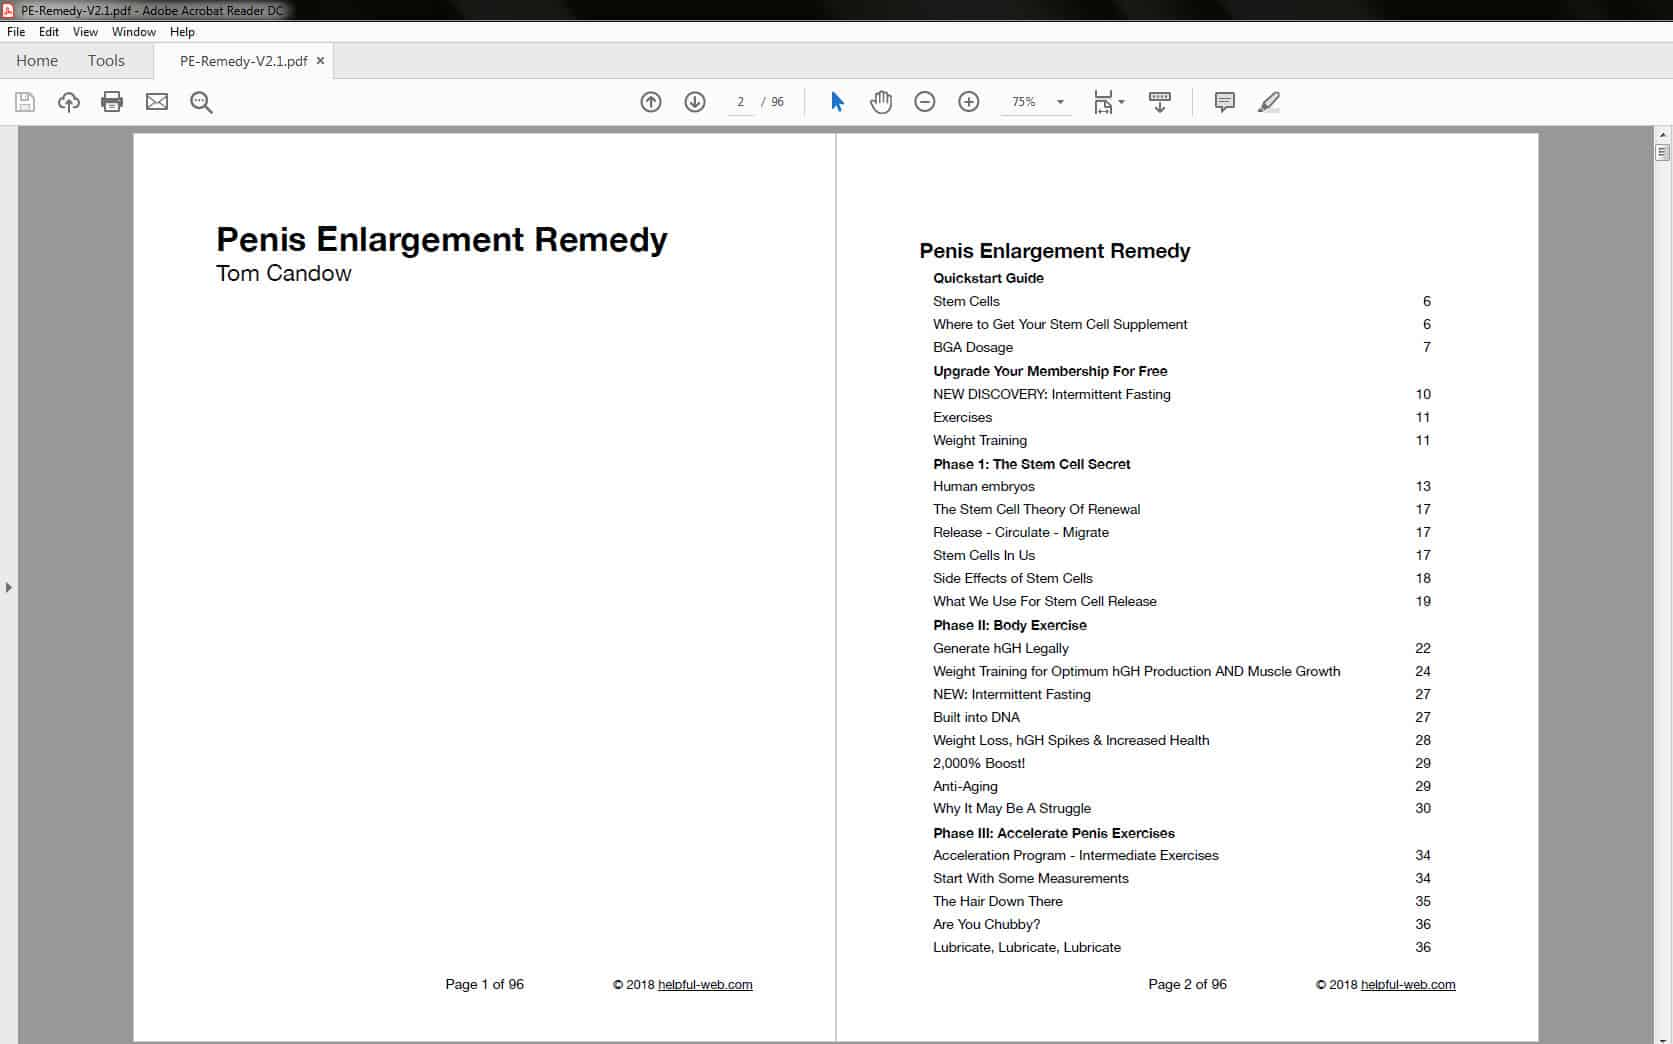 Penis Enlargement Remedy - Table of Contents Part 1